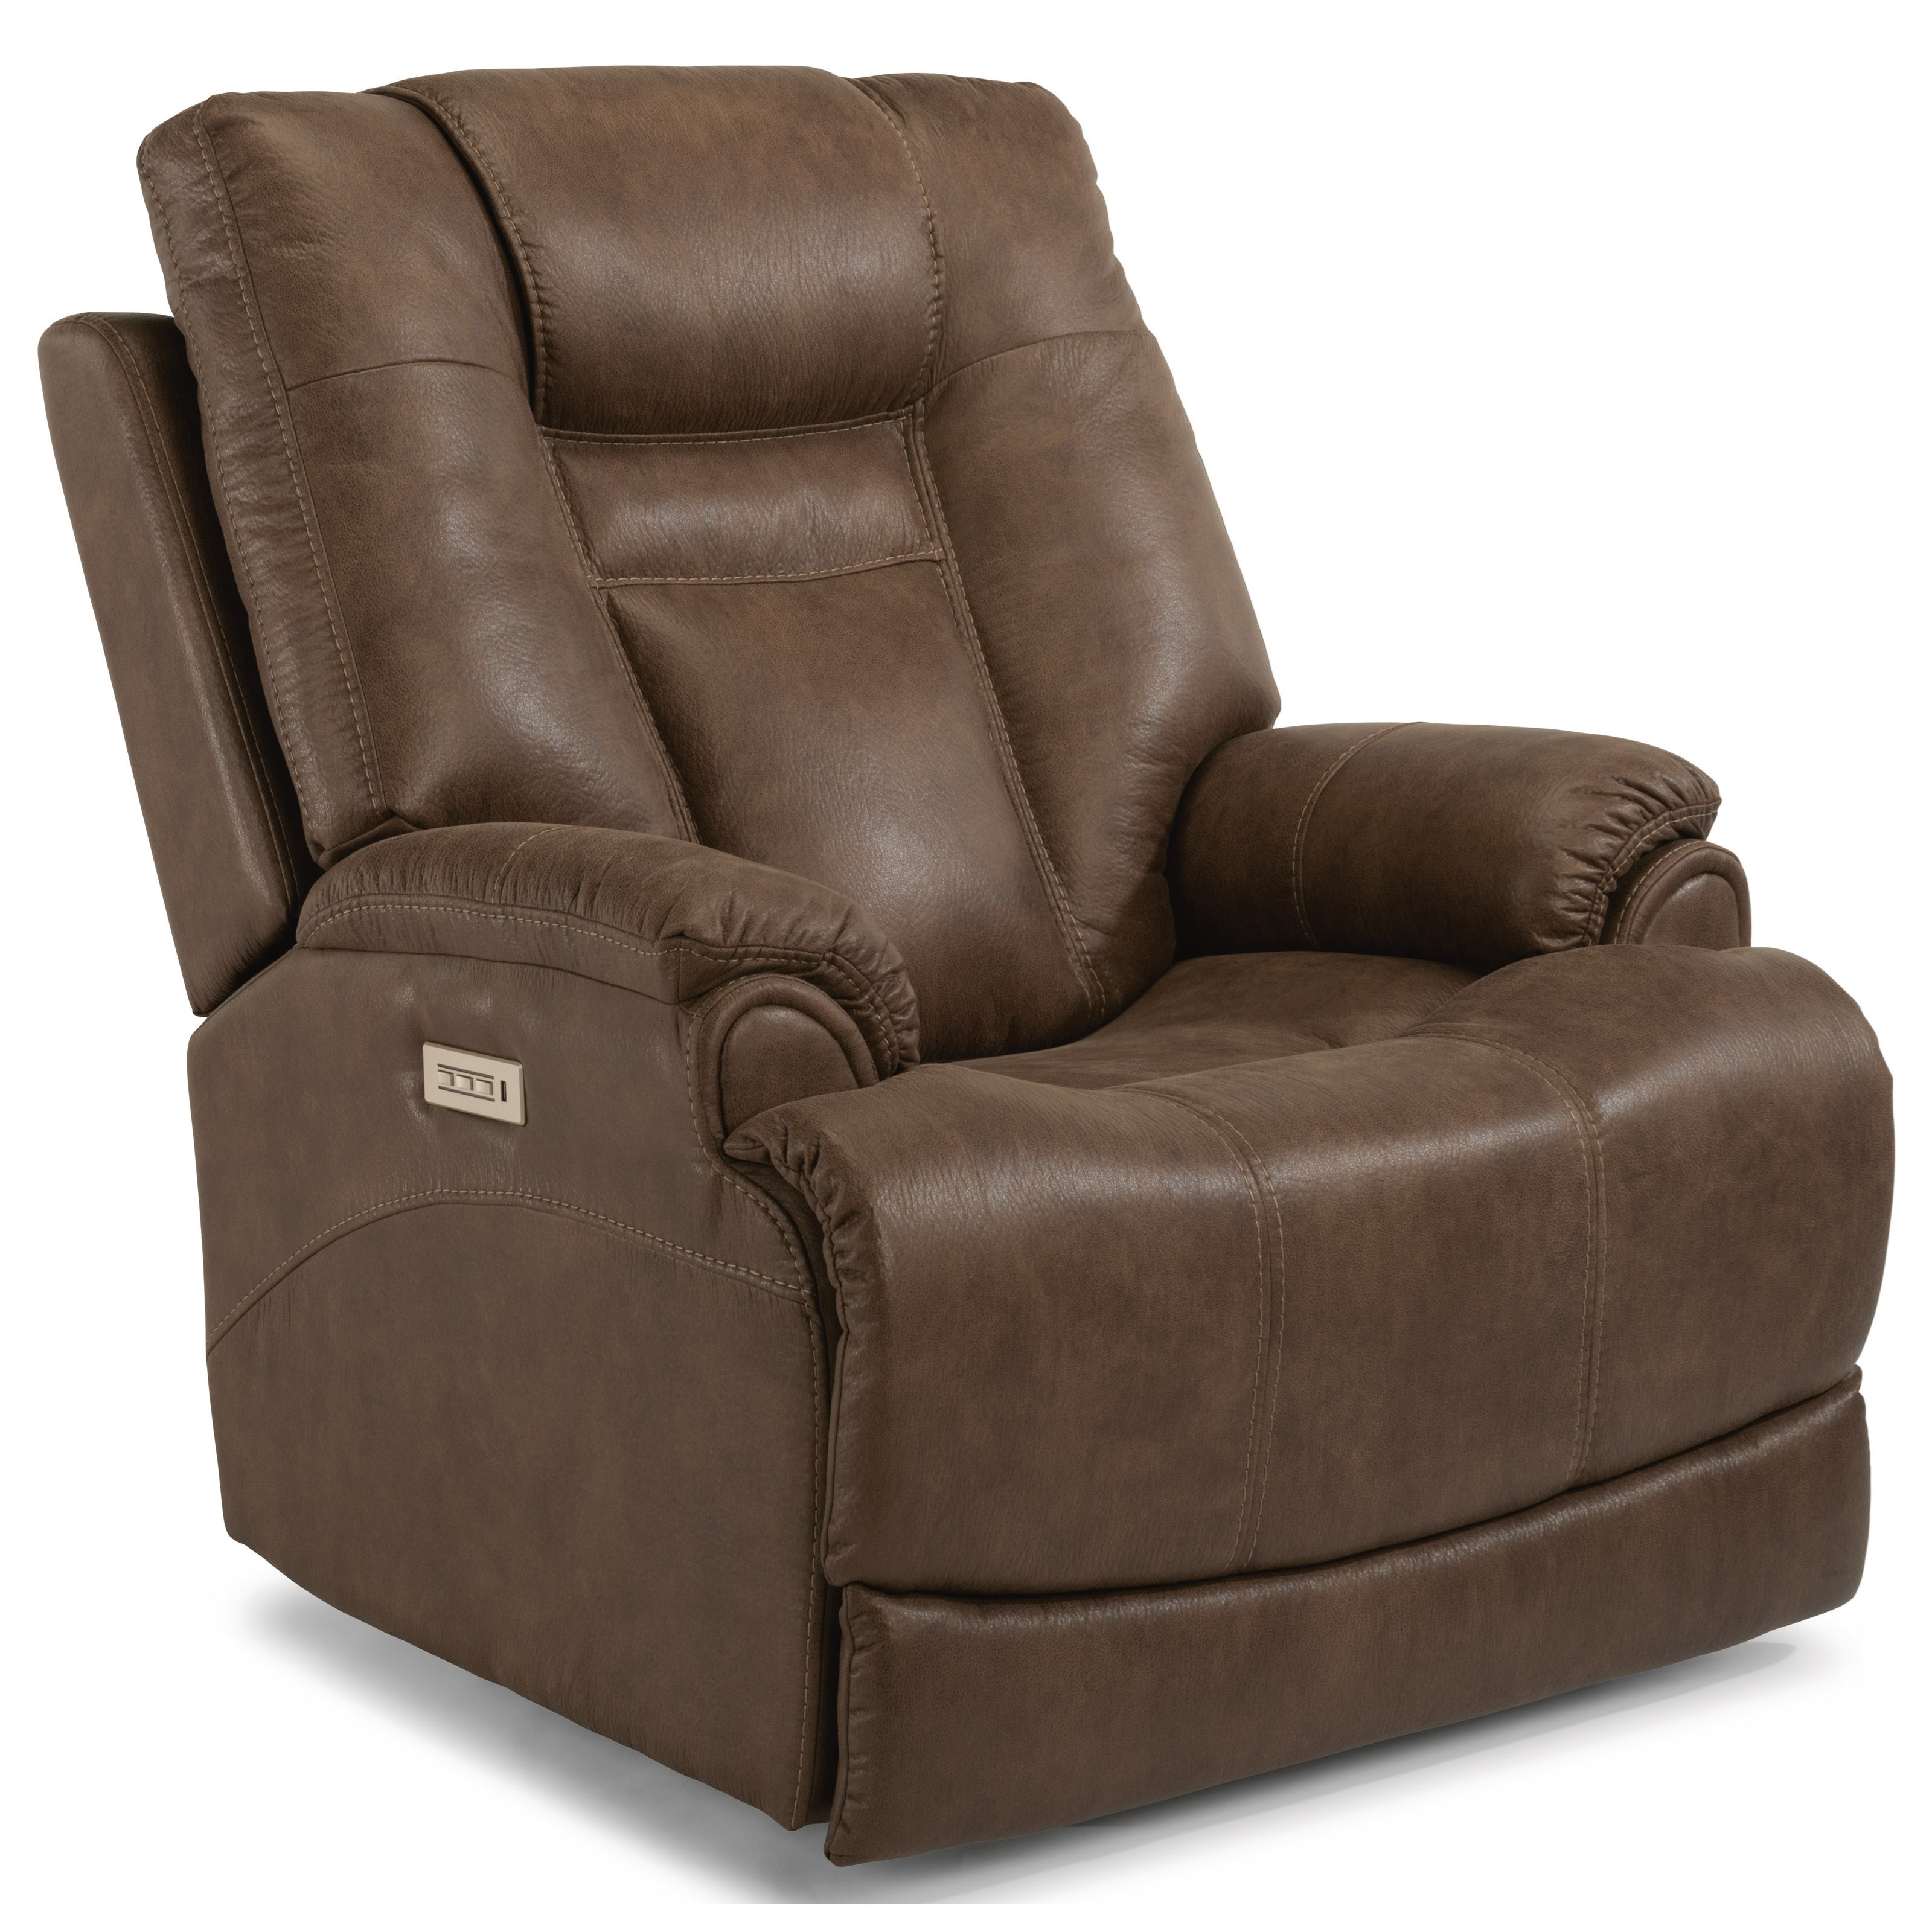 Marley Power Recliner with Power Headrest by Flexsteel at Williams & Kay